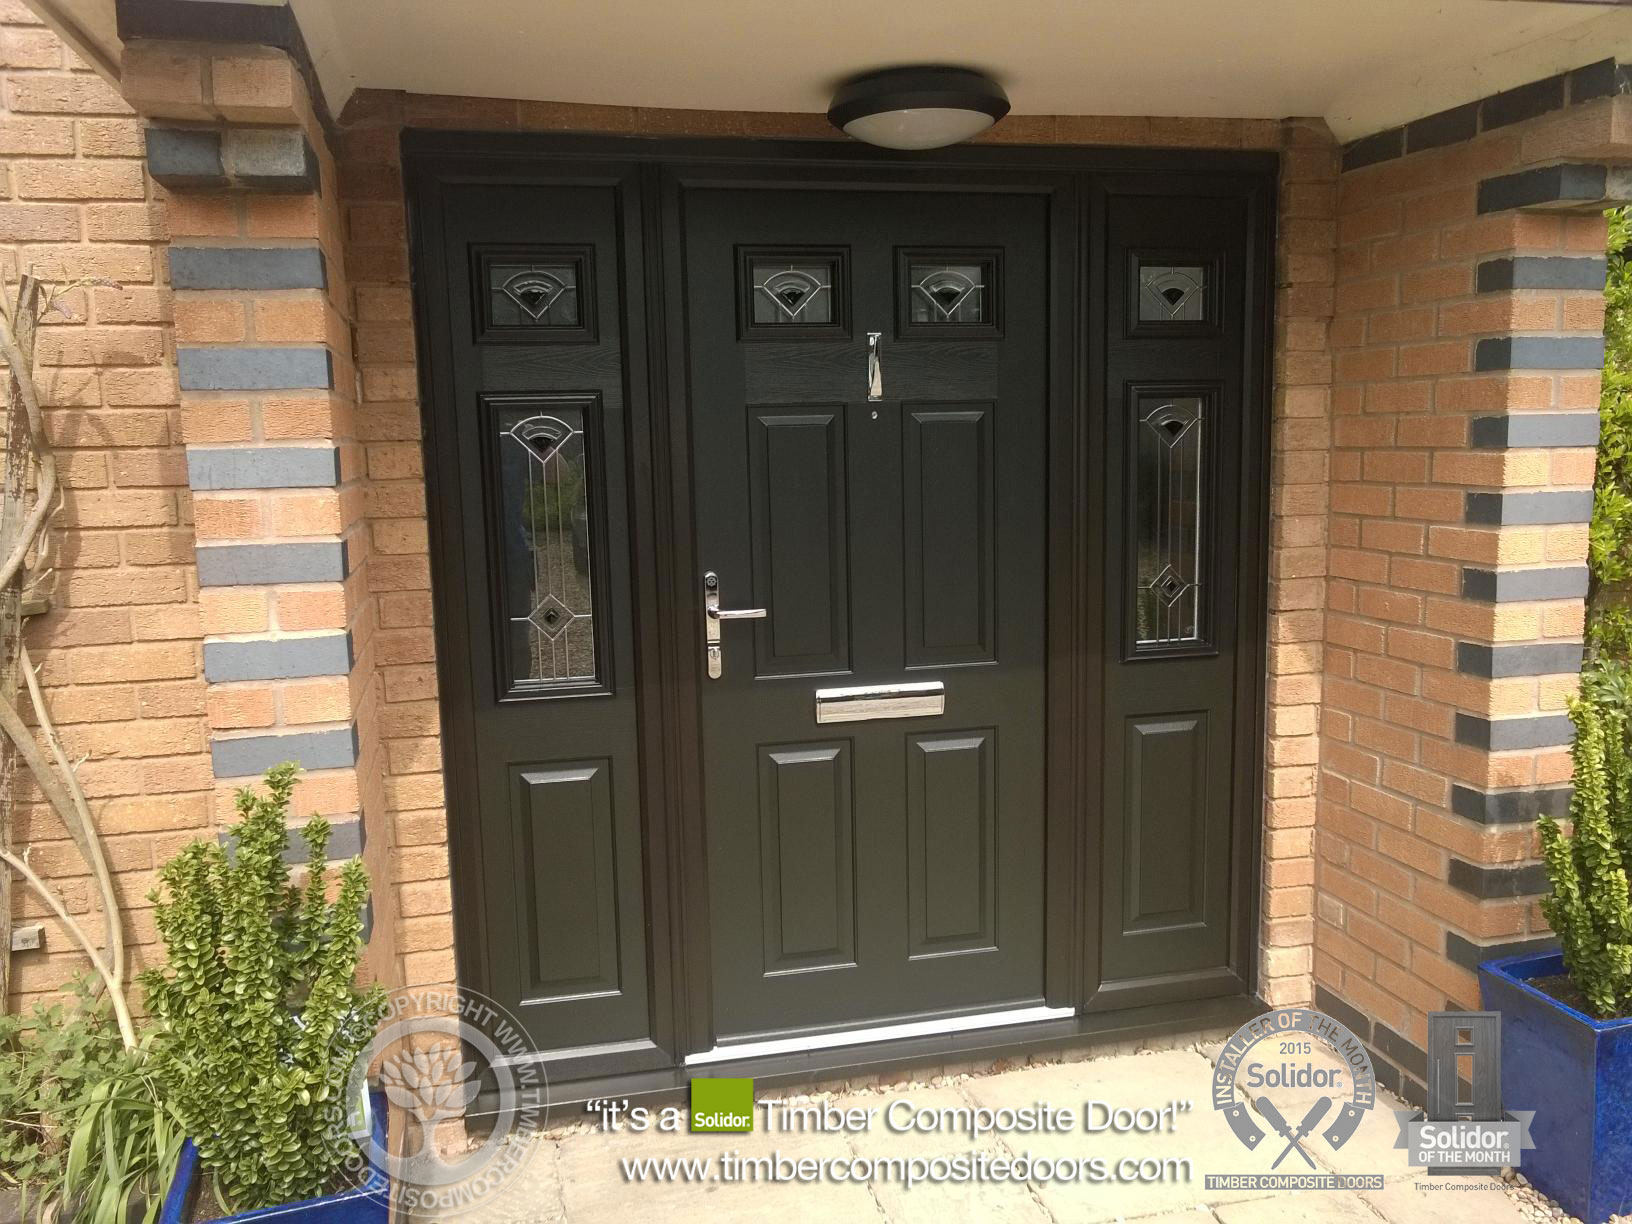 Enhancing homes solidor tenby timber composite doors blog for Exterior doors with side panels